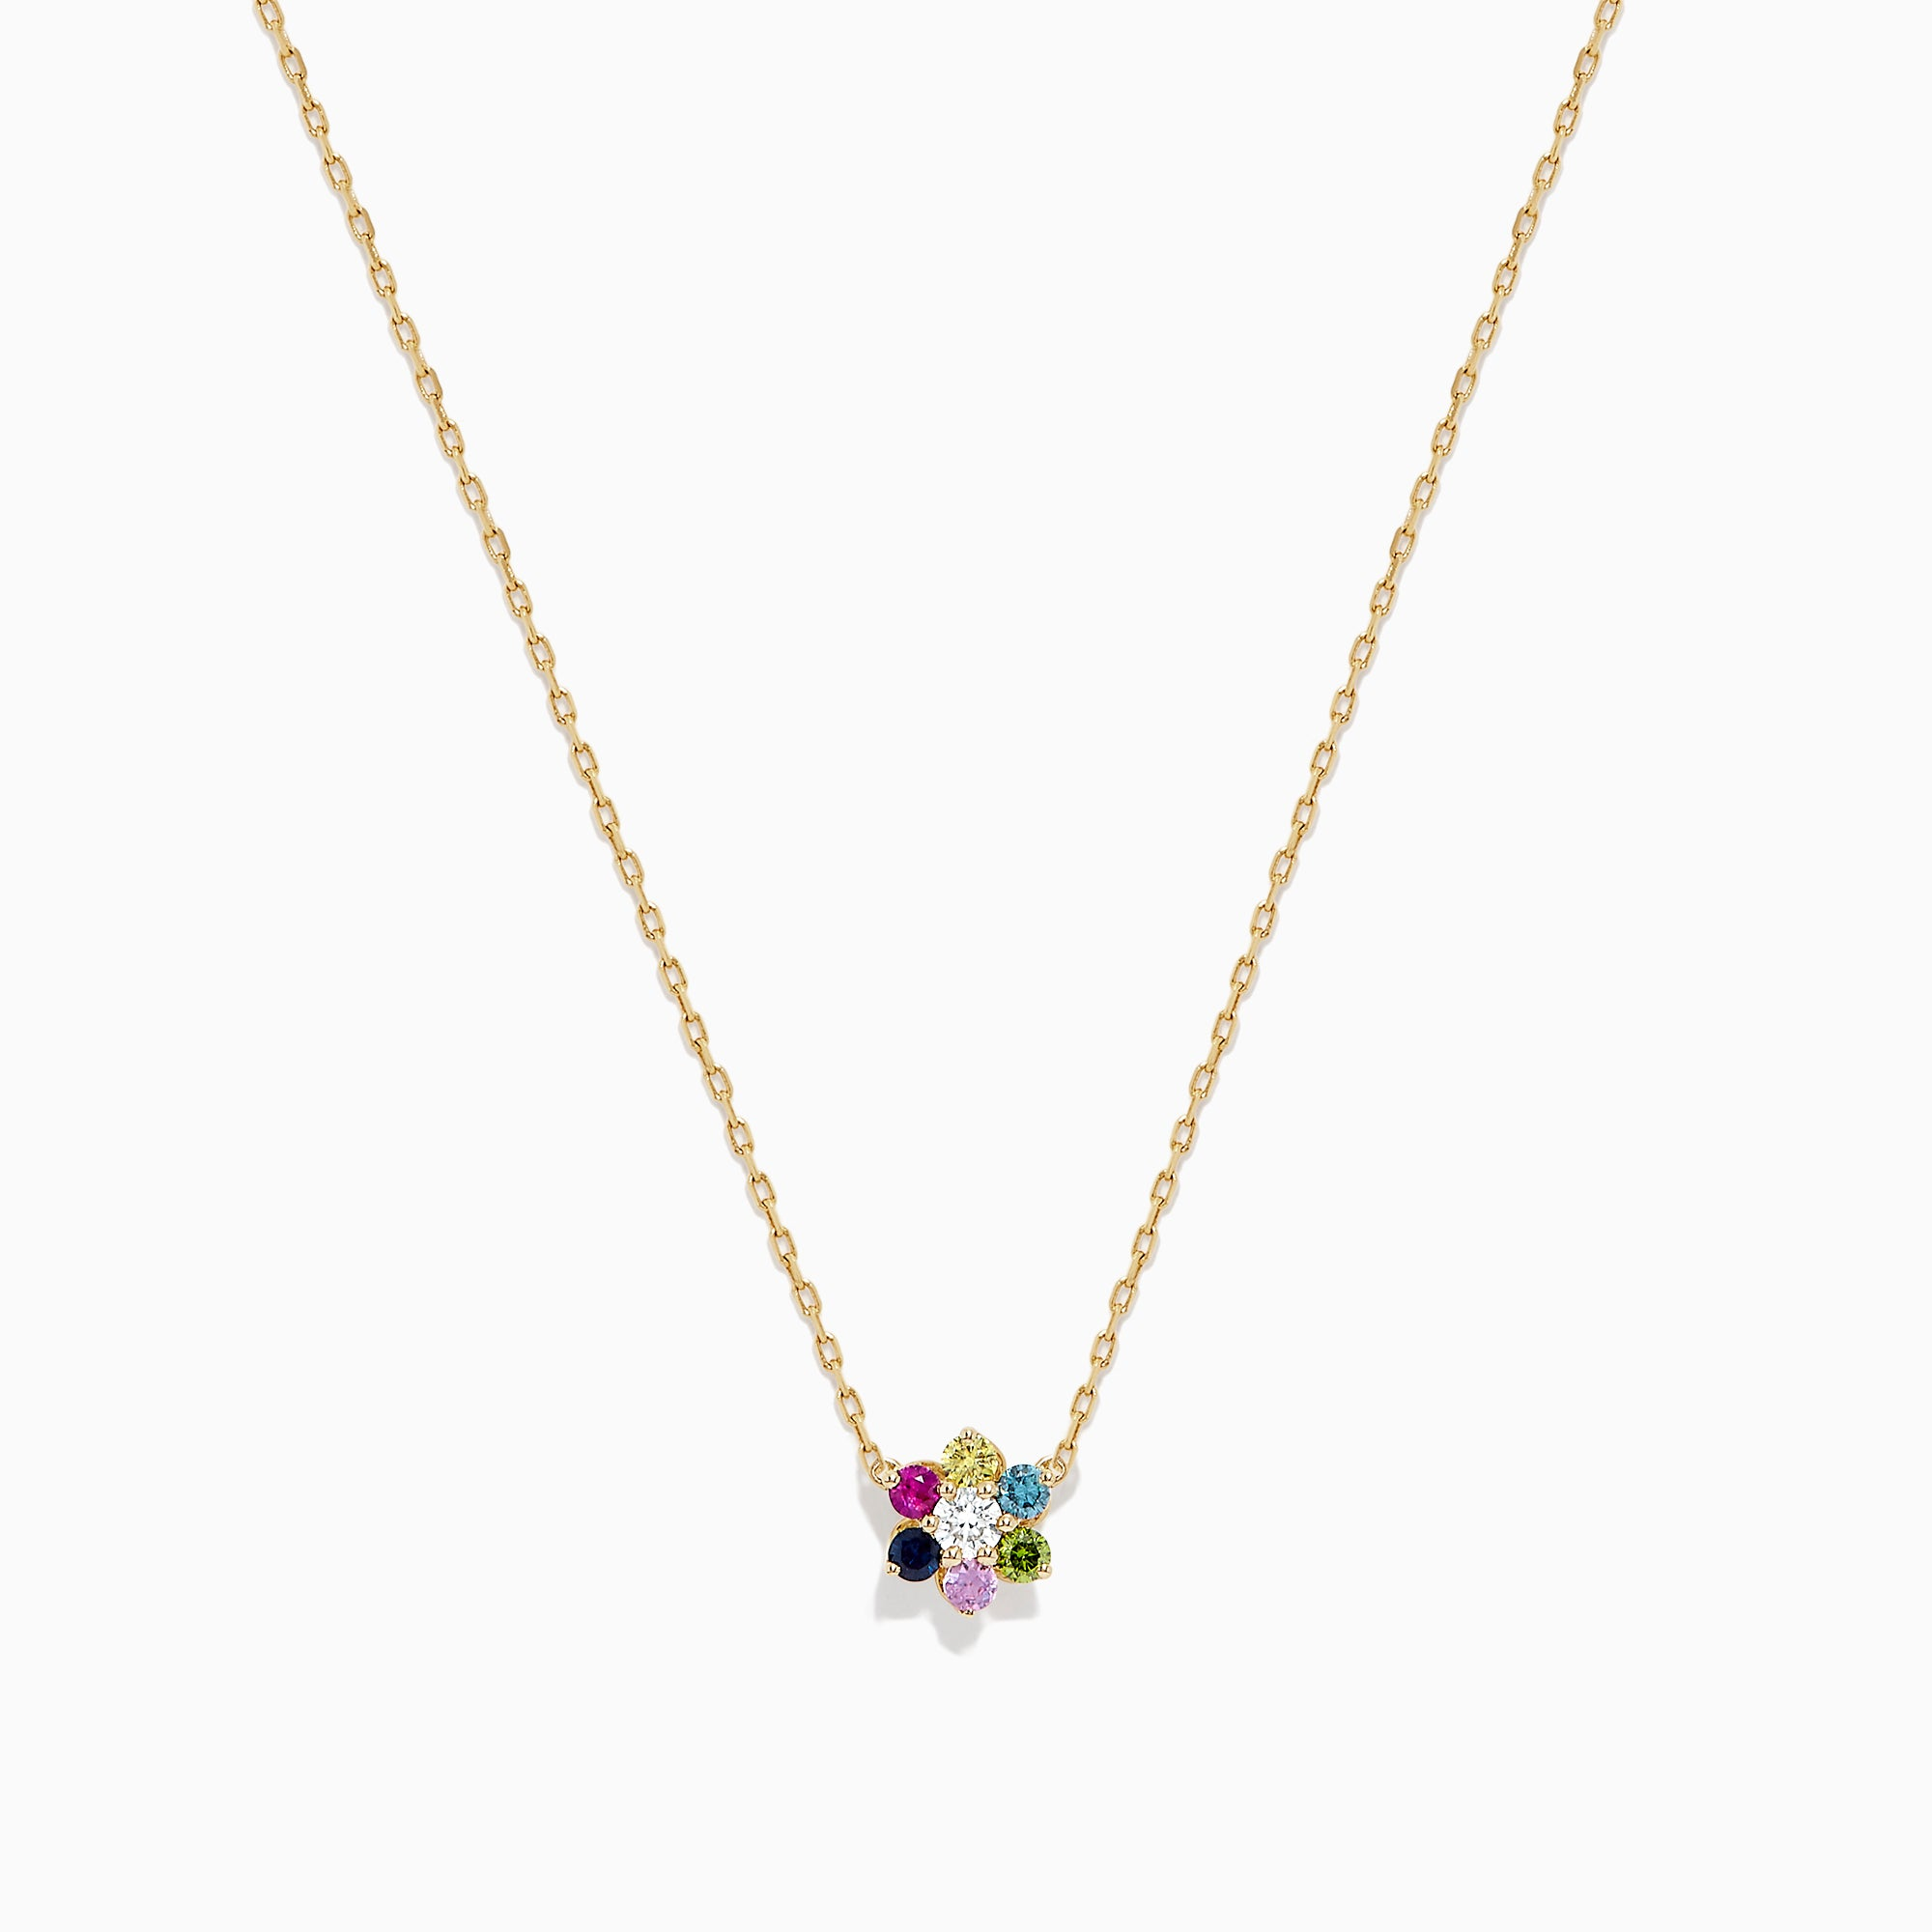 Effy Watercolors 14K Gold Multi Sapphire and Diamond Necklace, 0.34 TCW